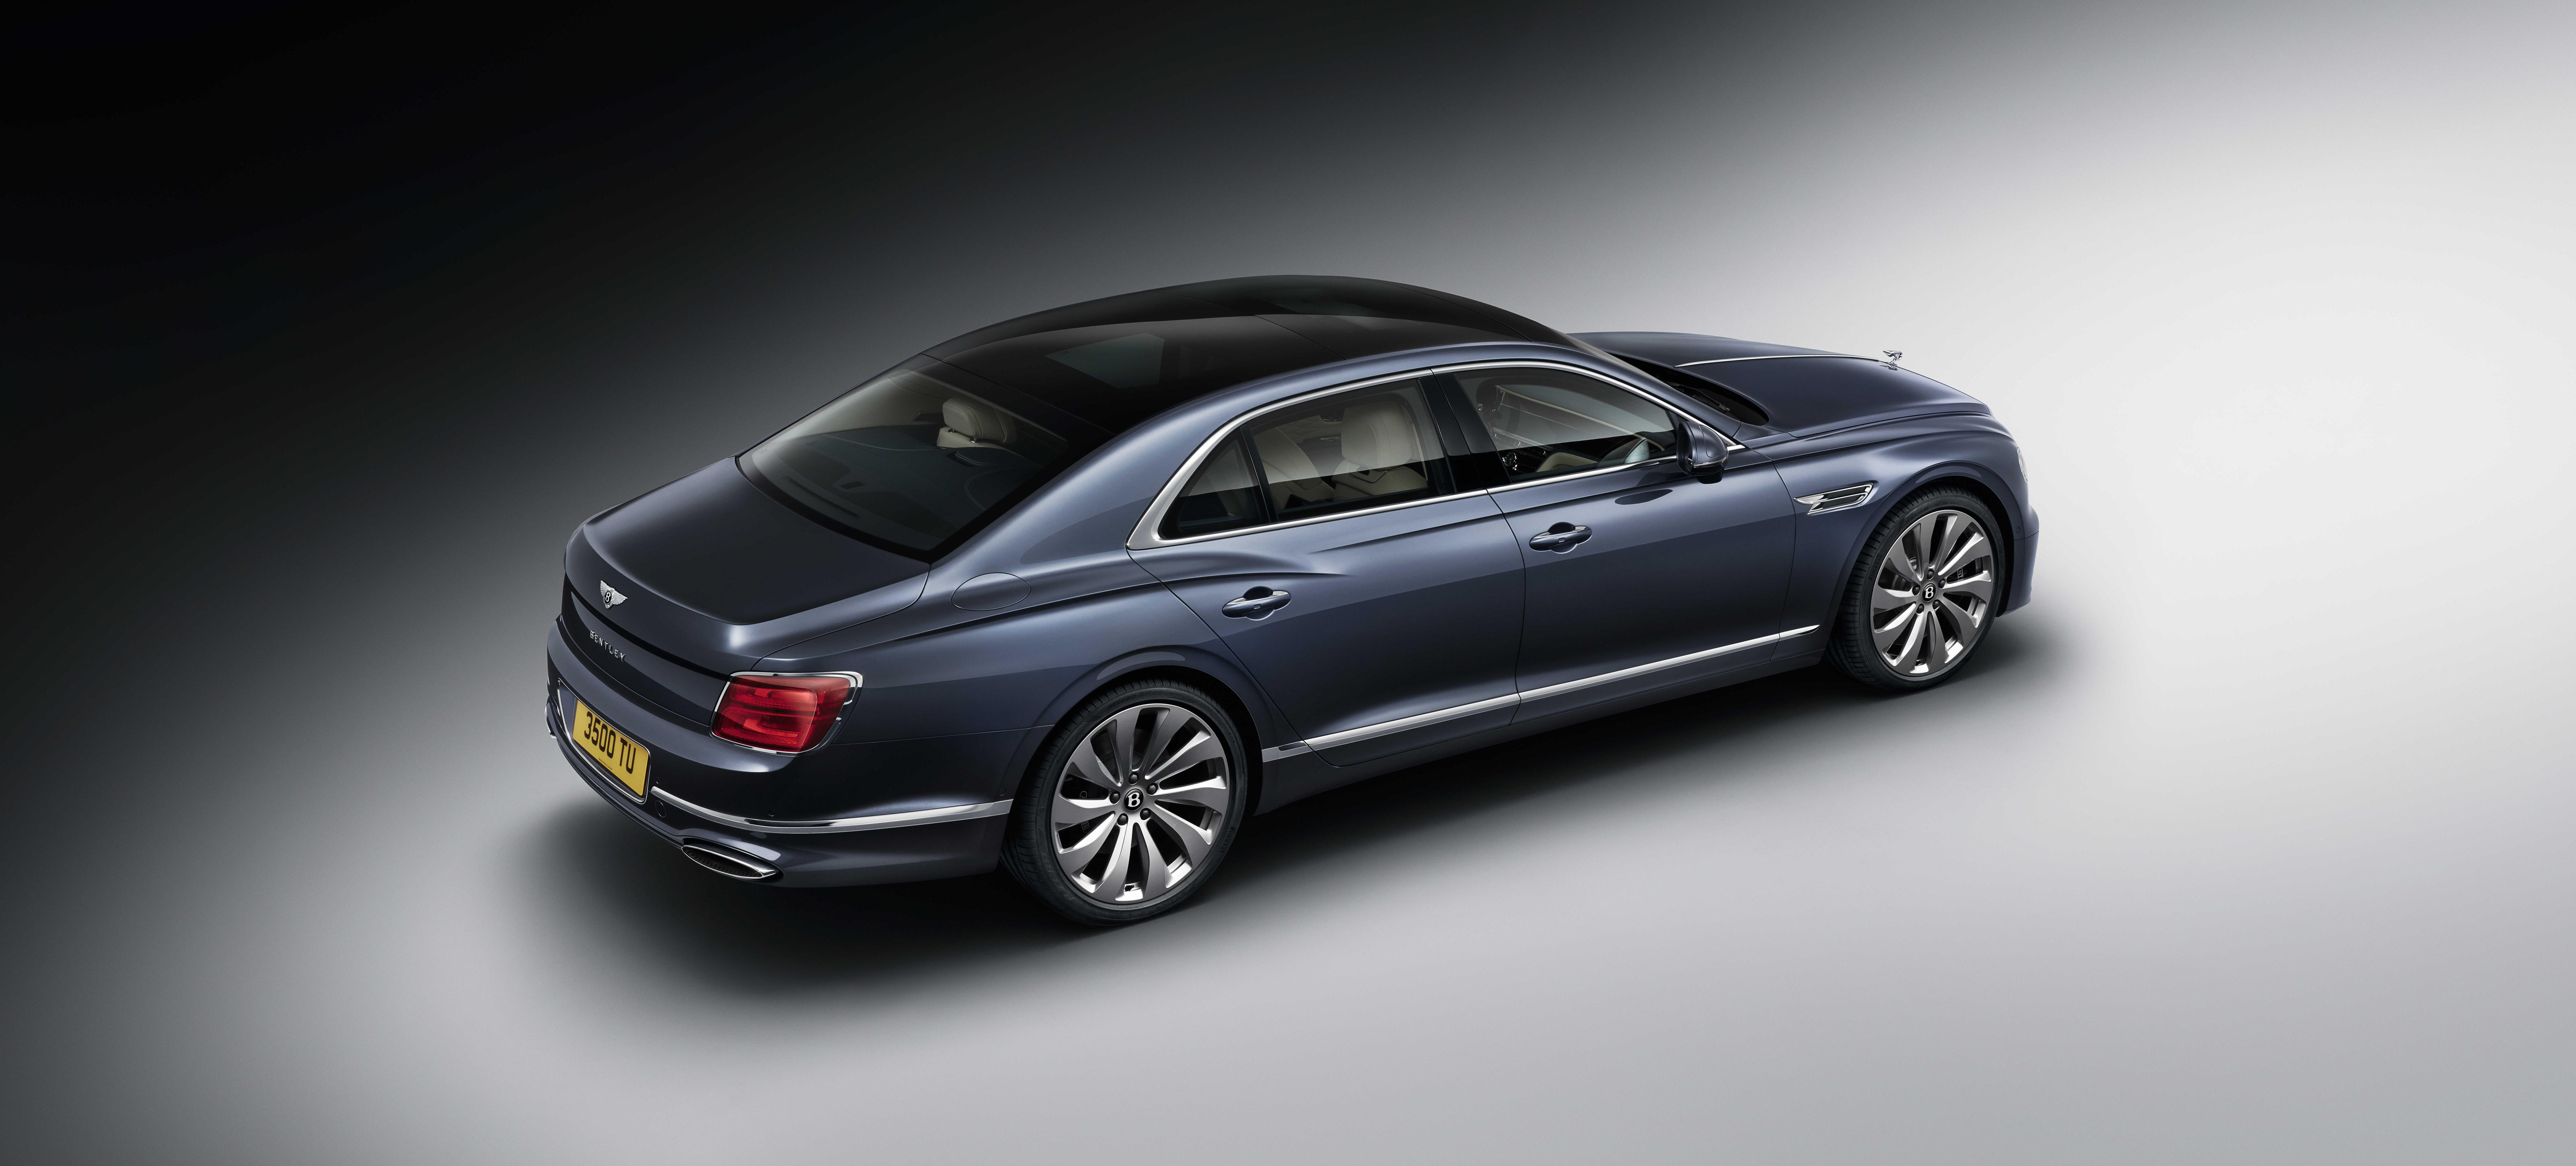 2020 Bentley Flying Spur Rear View